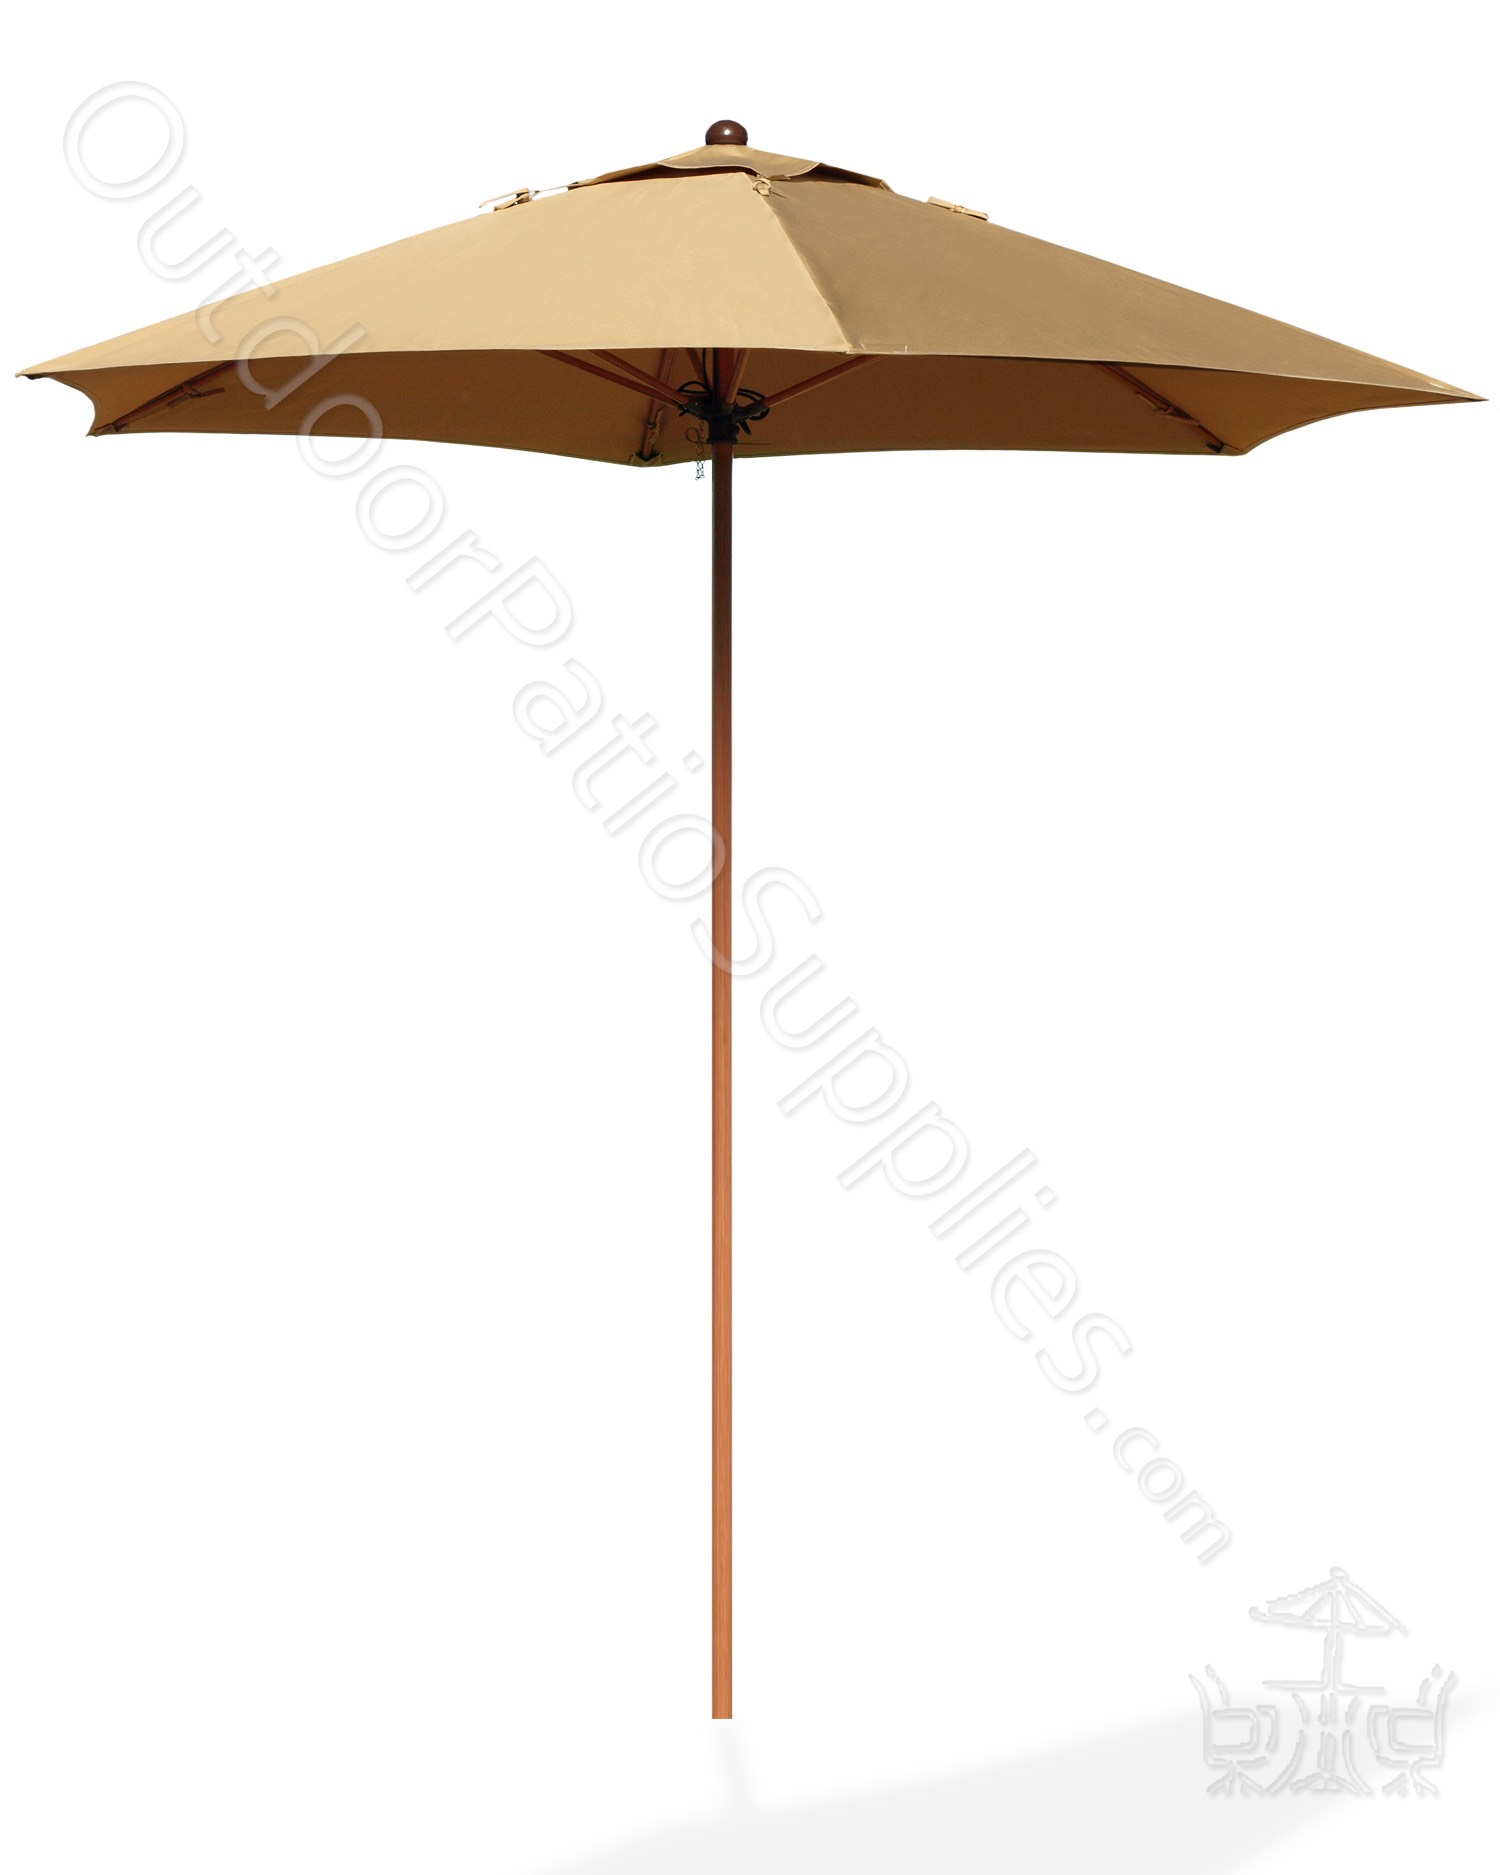 South Beach Umbrella